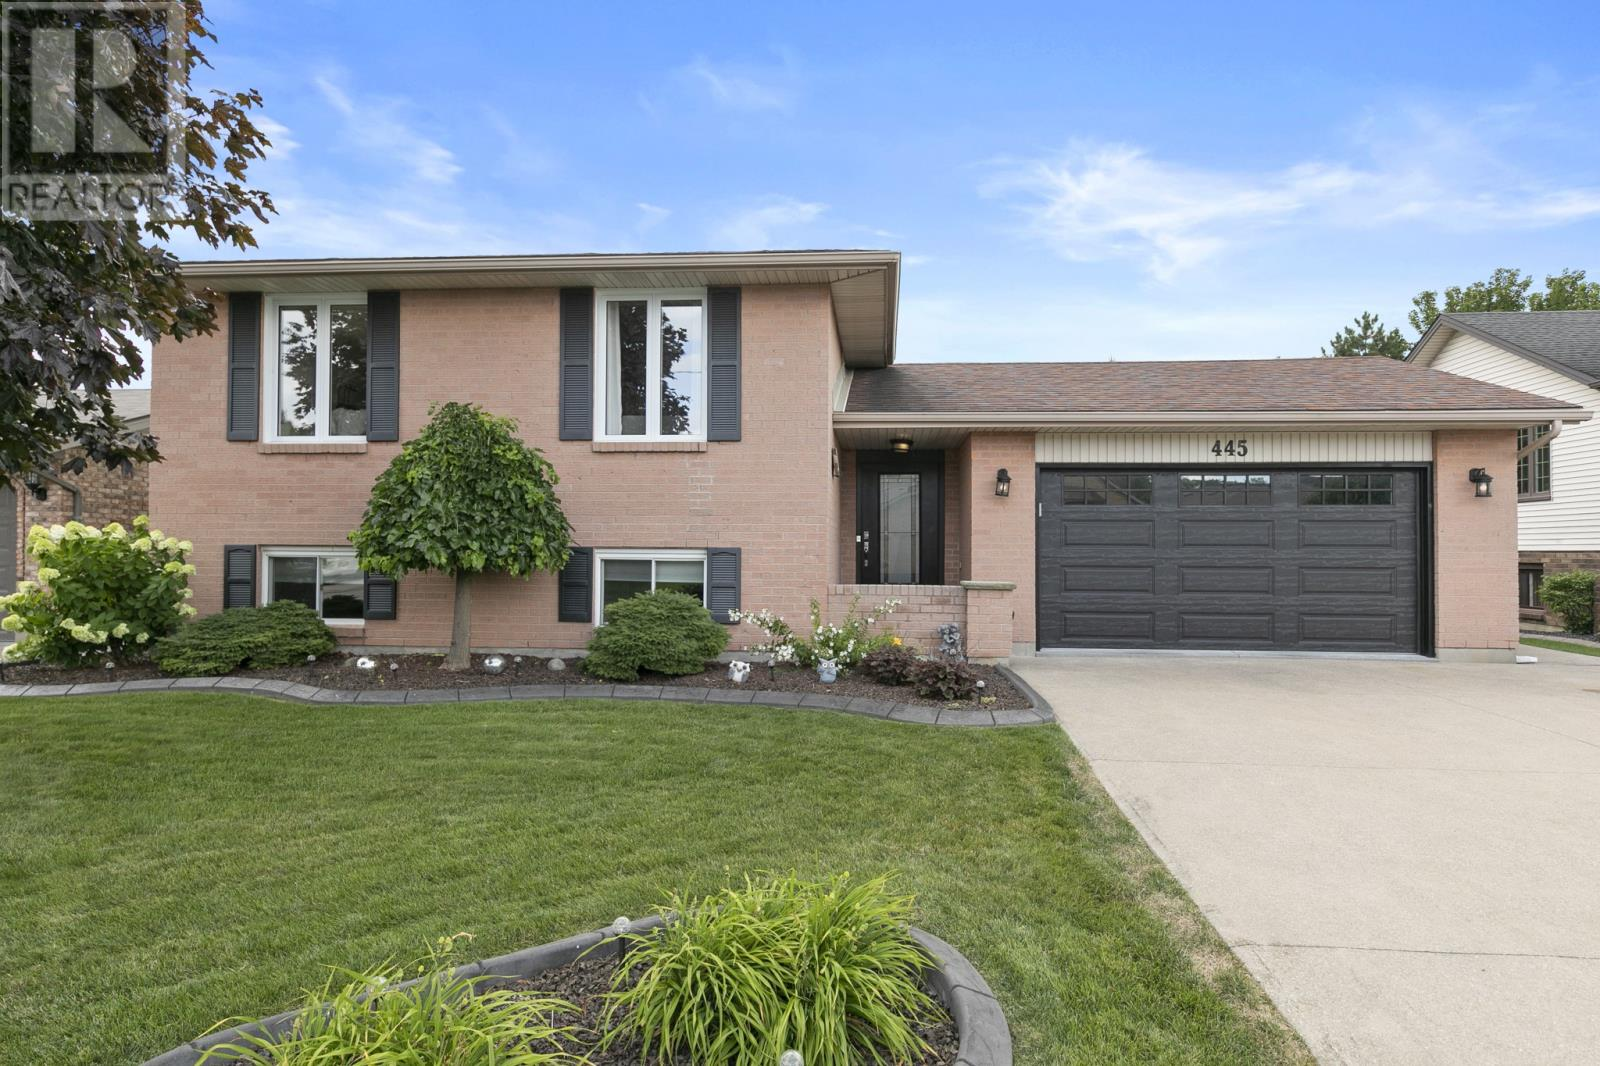 Image nr 1 for listing 445 LACASSE, Tecumseh